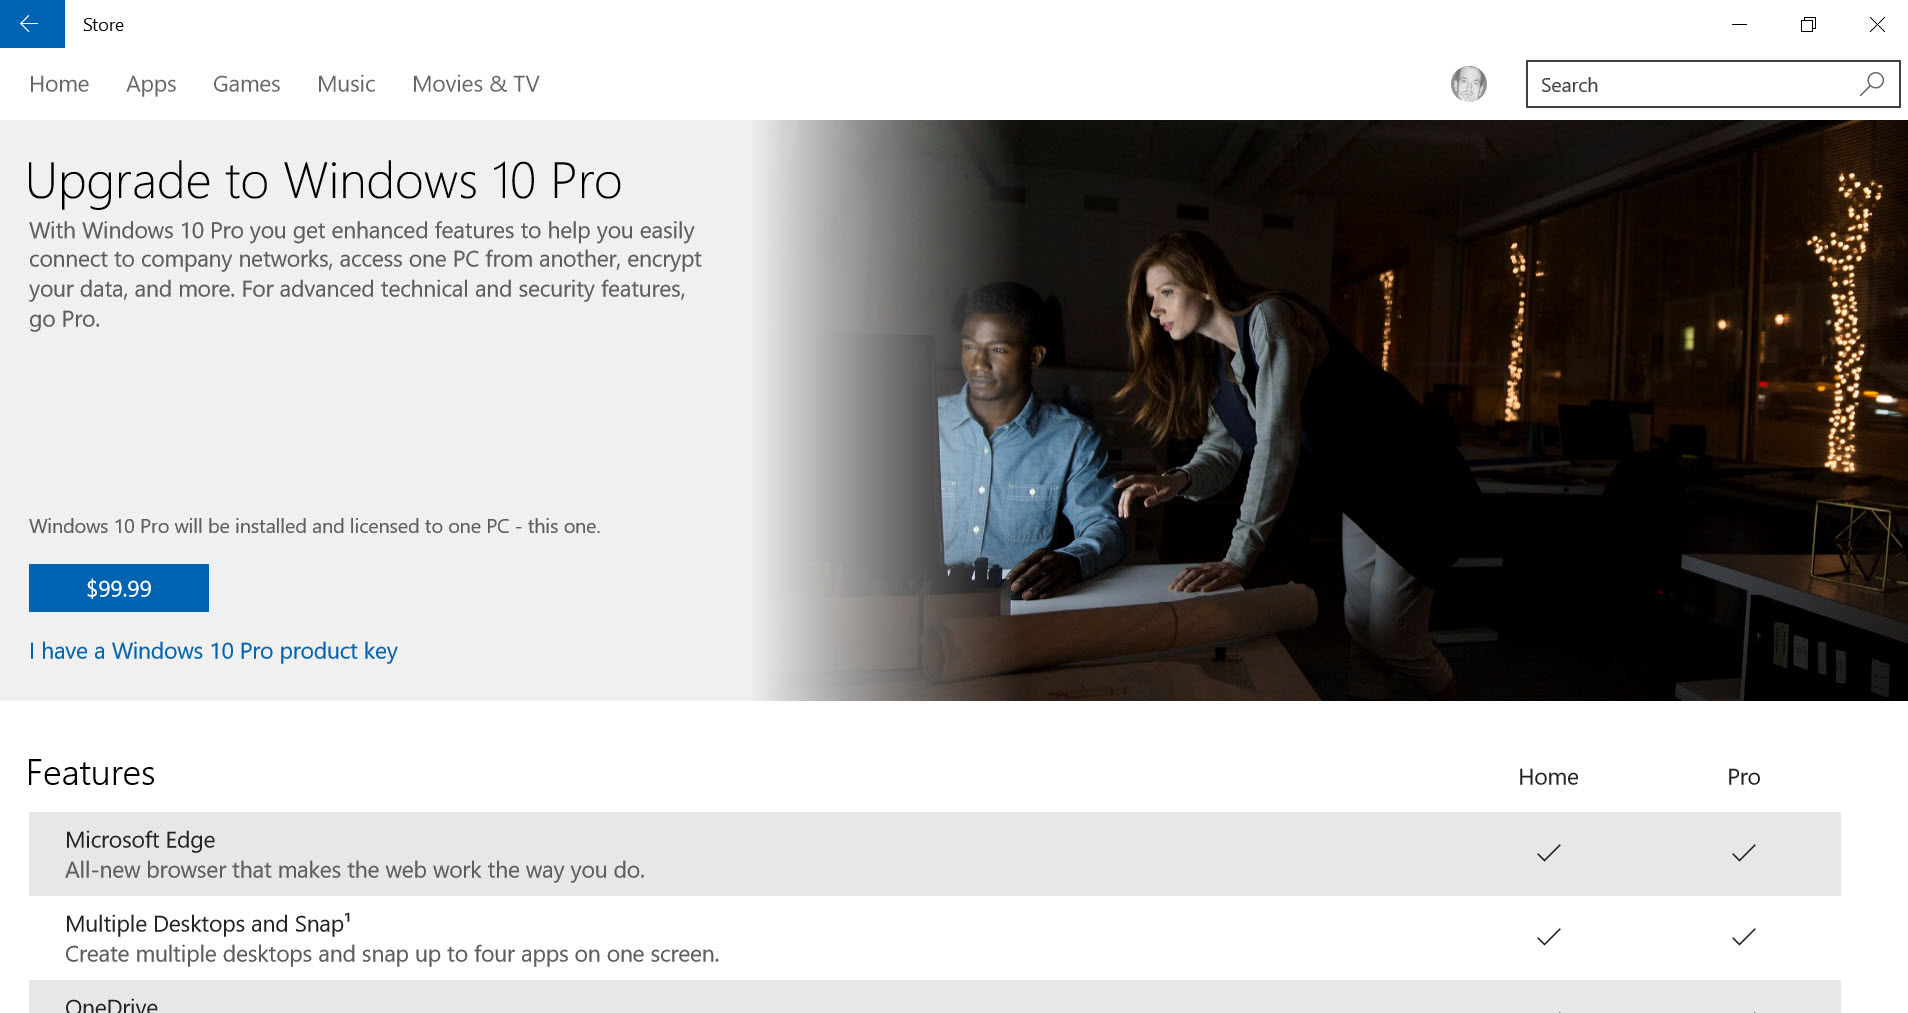 upgrade to windows 10 pro from windows 10 home